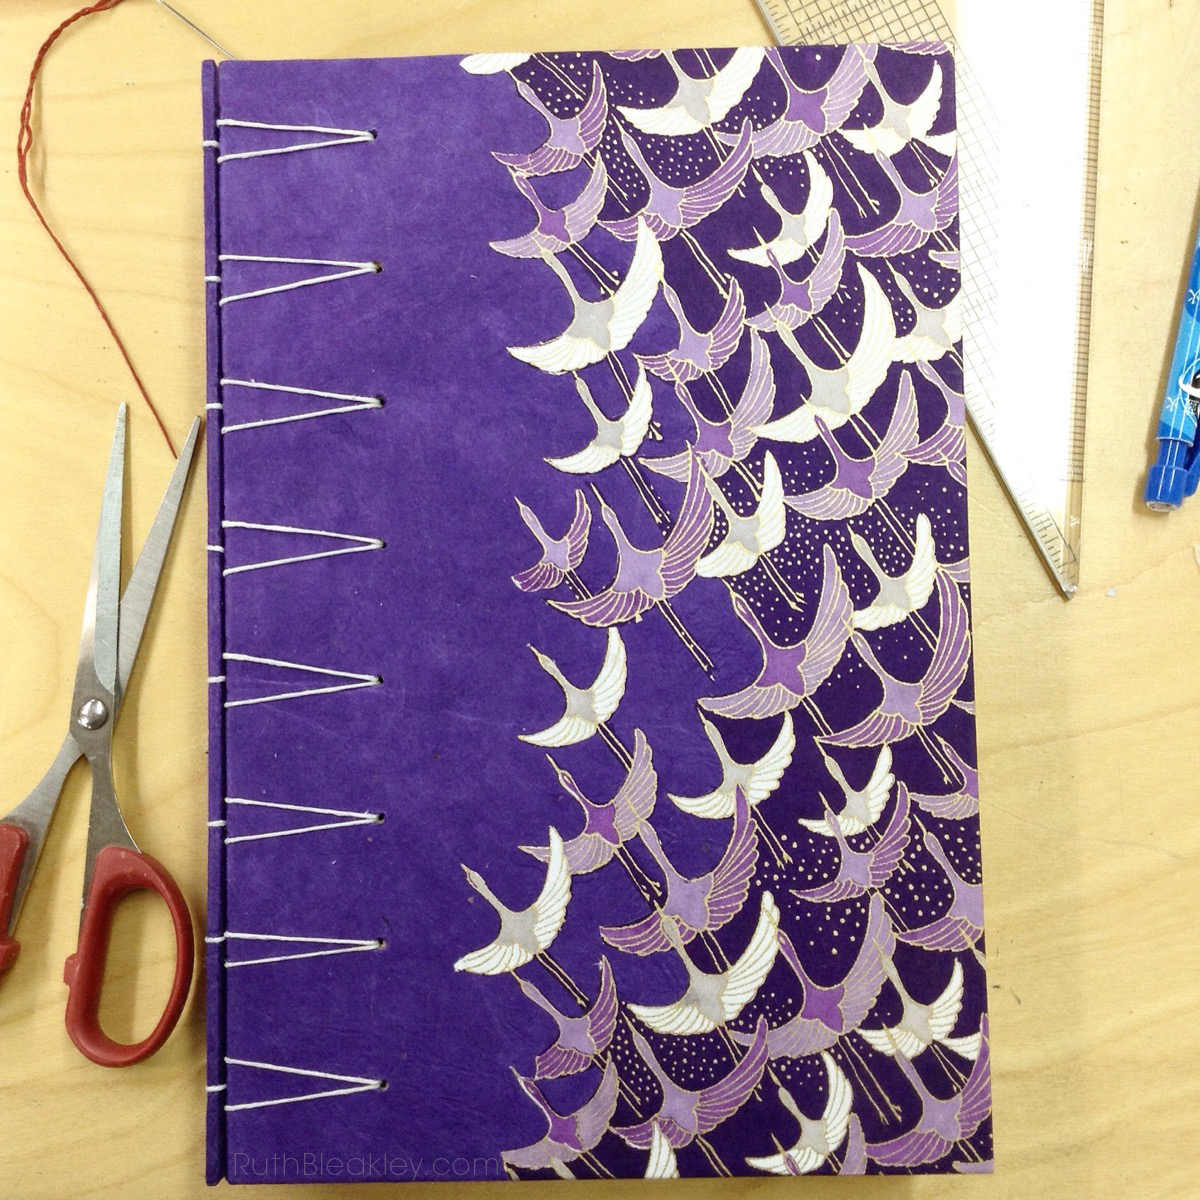 Finished secret Belgian binding journal made by Ruth Bleakley at a workshop at Asheville Bookworks